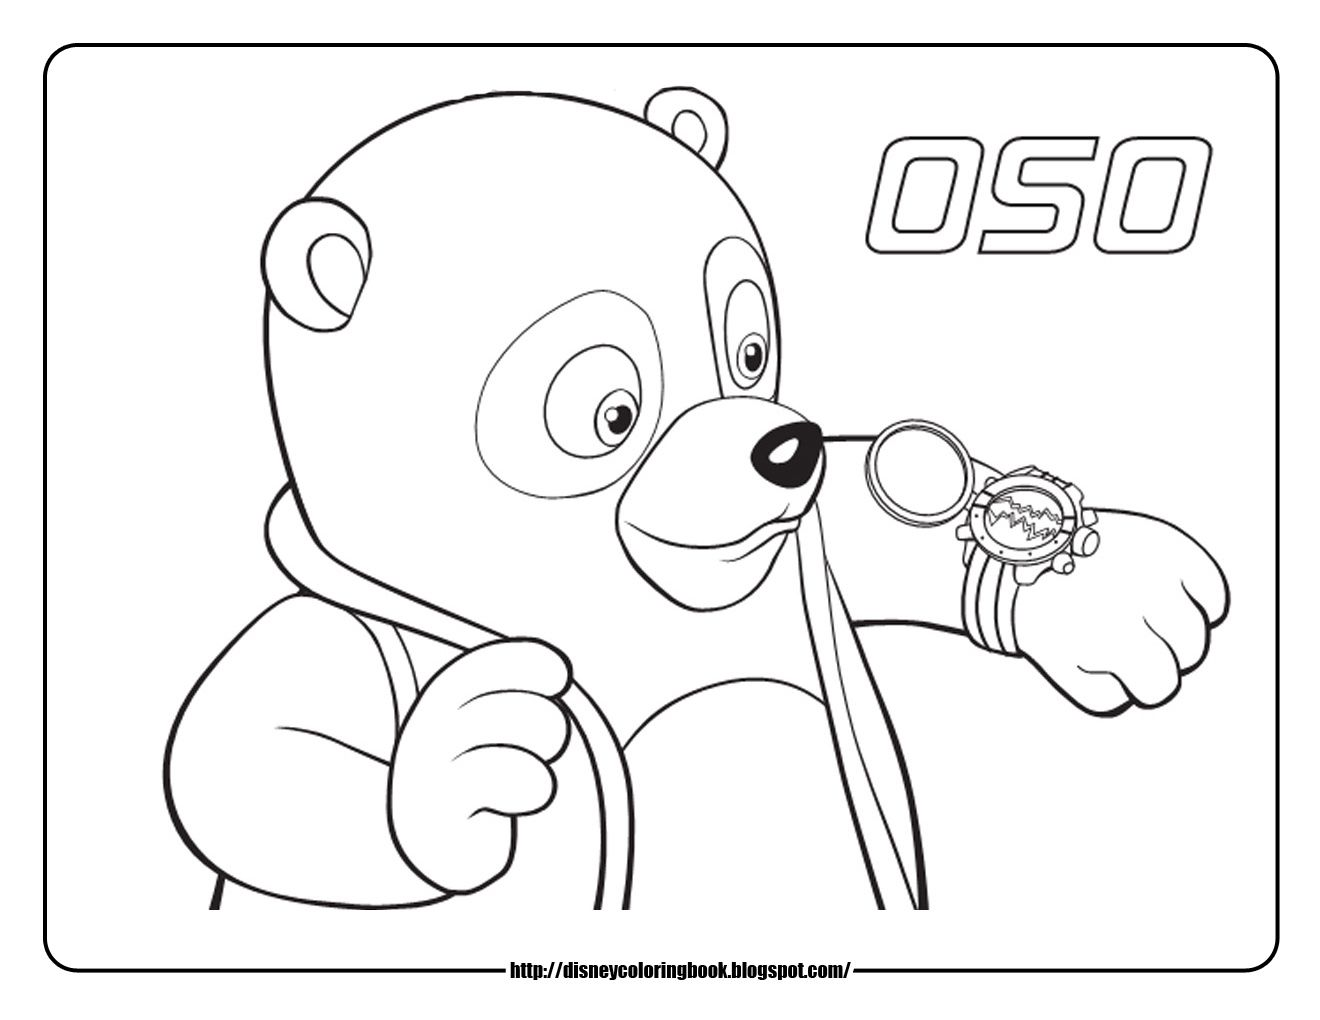 Disney junior coloring pages special agent oso 1 free disney coloring sheets